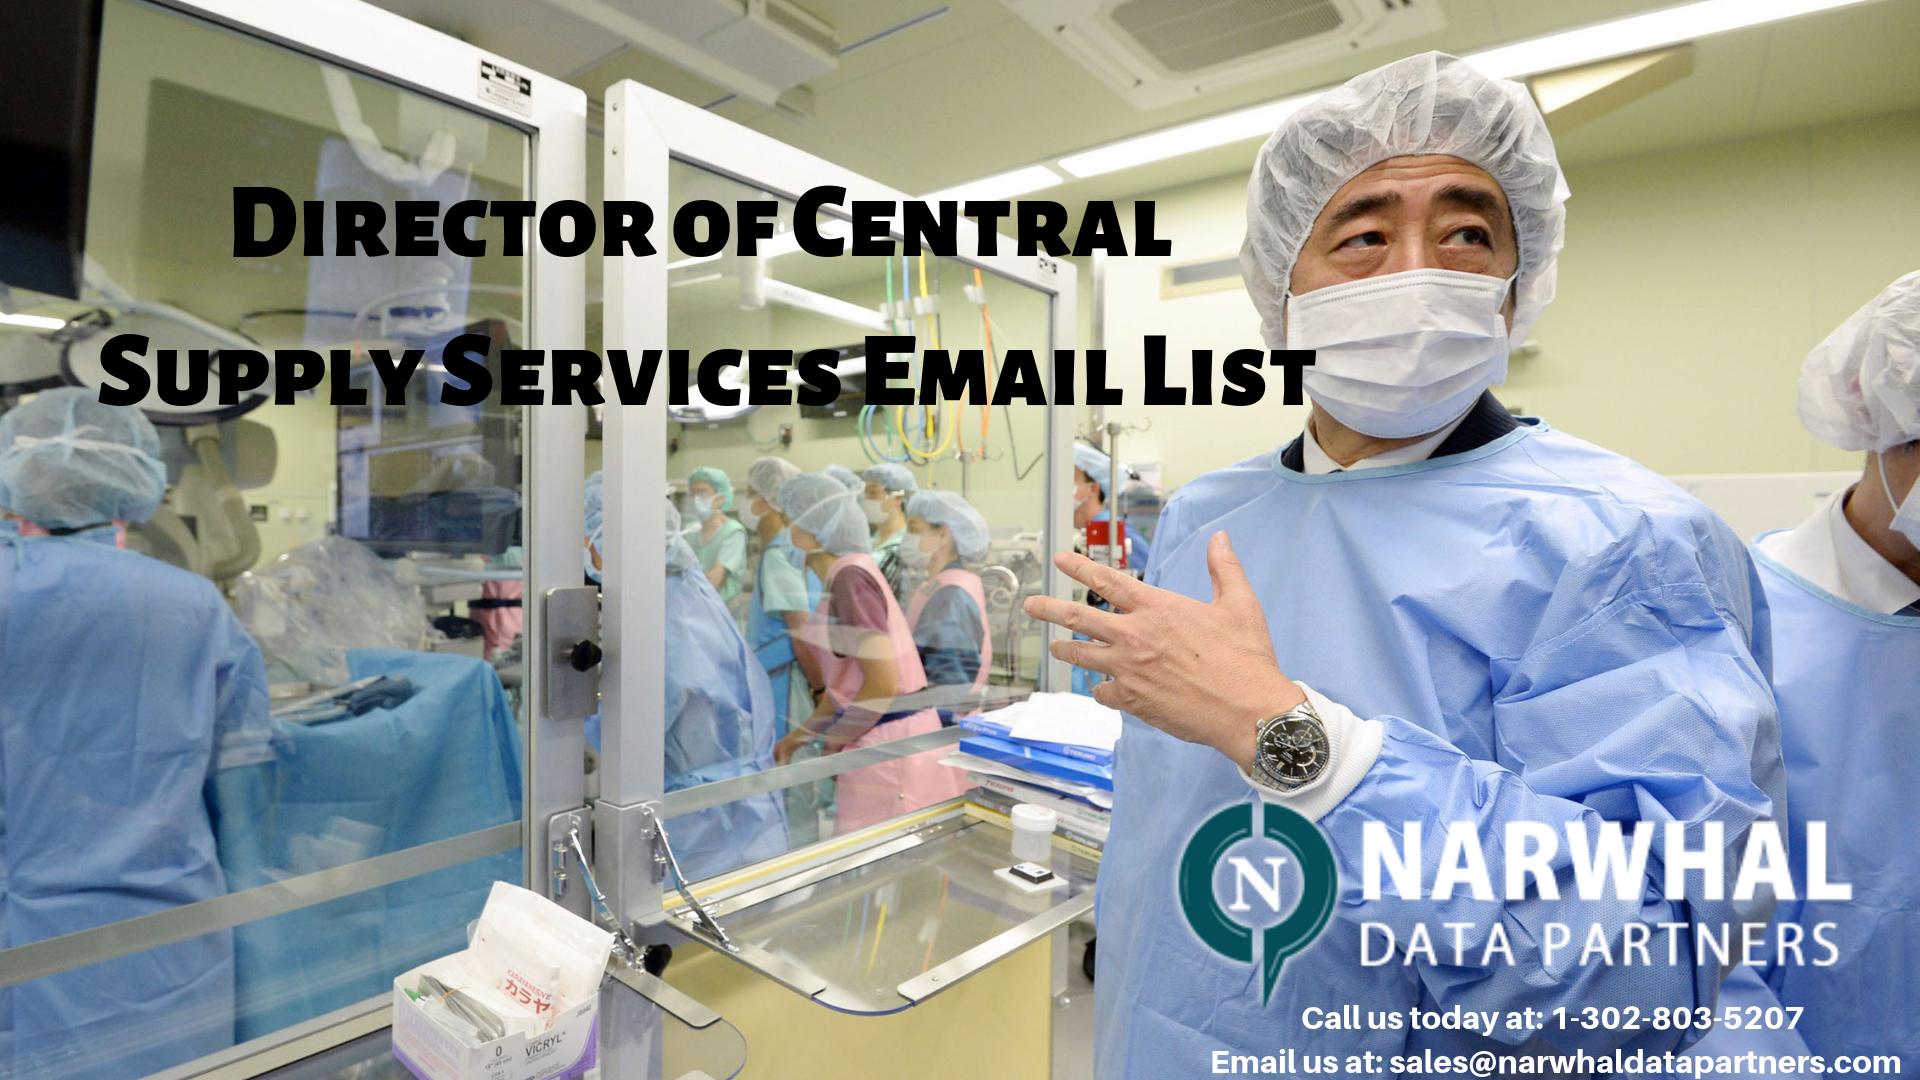 http://narwhaldatapartners.com/director-of-central-supply-services-email-list.html